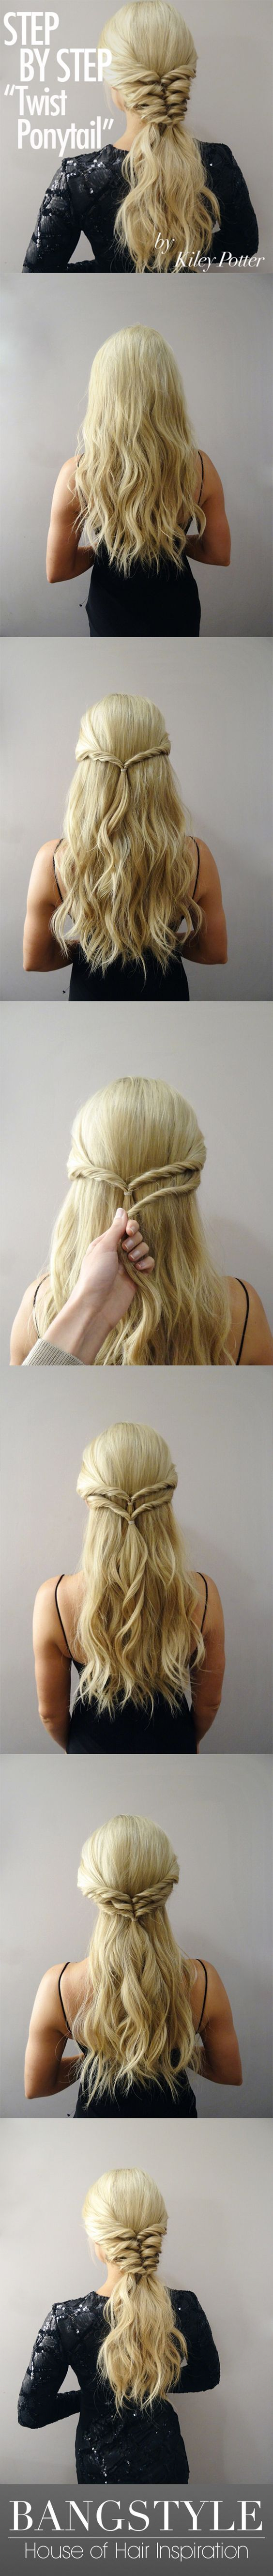 Get the Look Twist Ponytail Tutorial by Kiley Potter